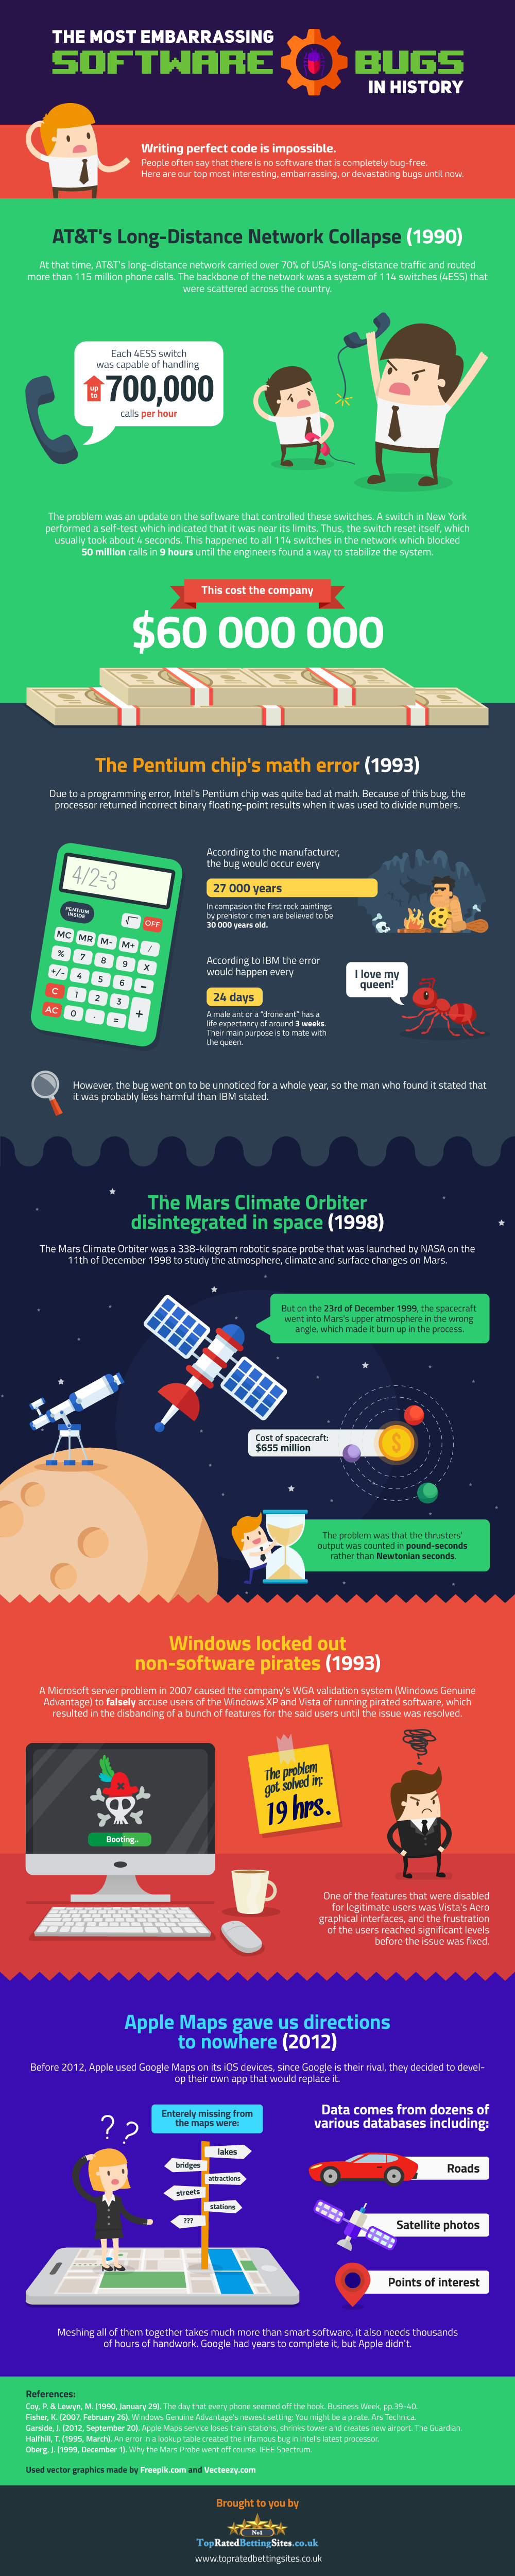 The Embarrassing History of Software Bugs - Infographic